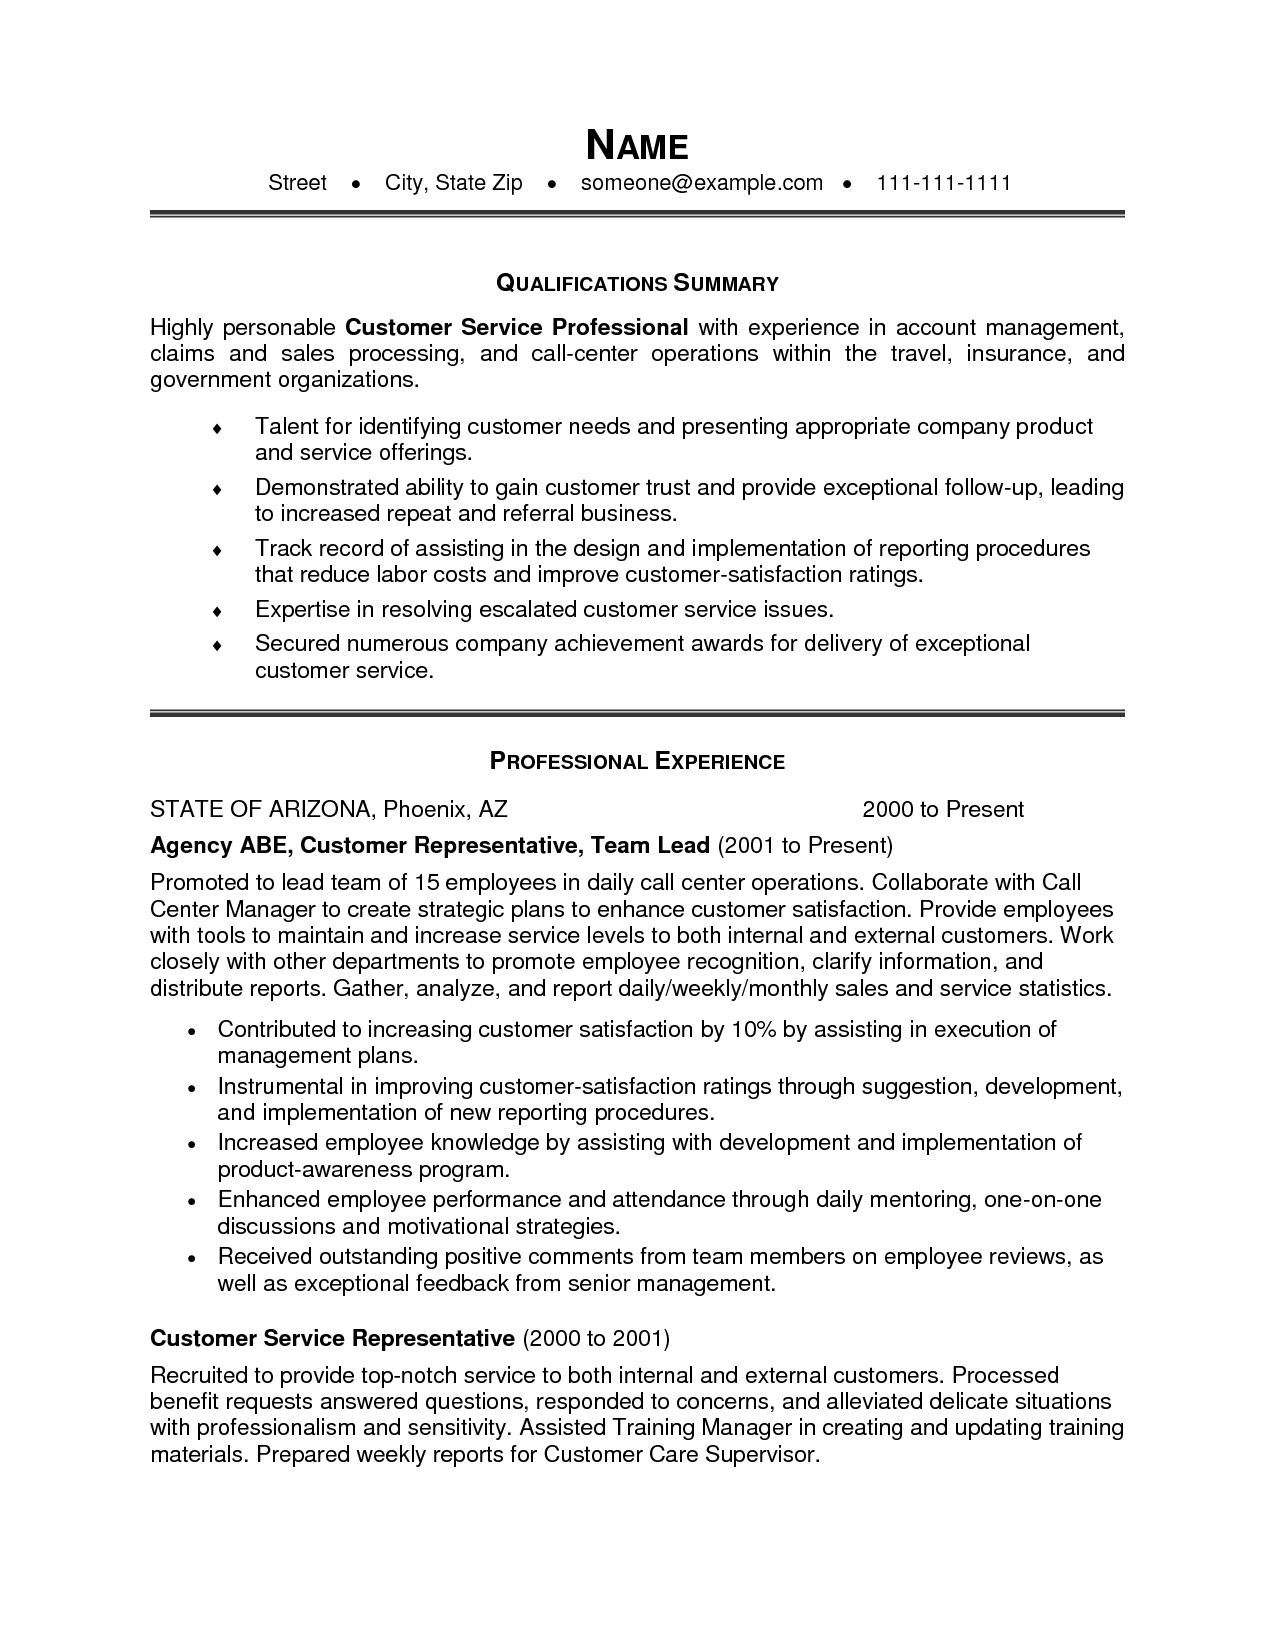 resume summary templates